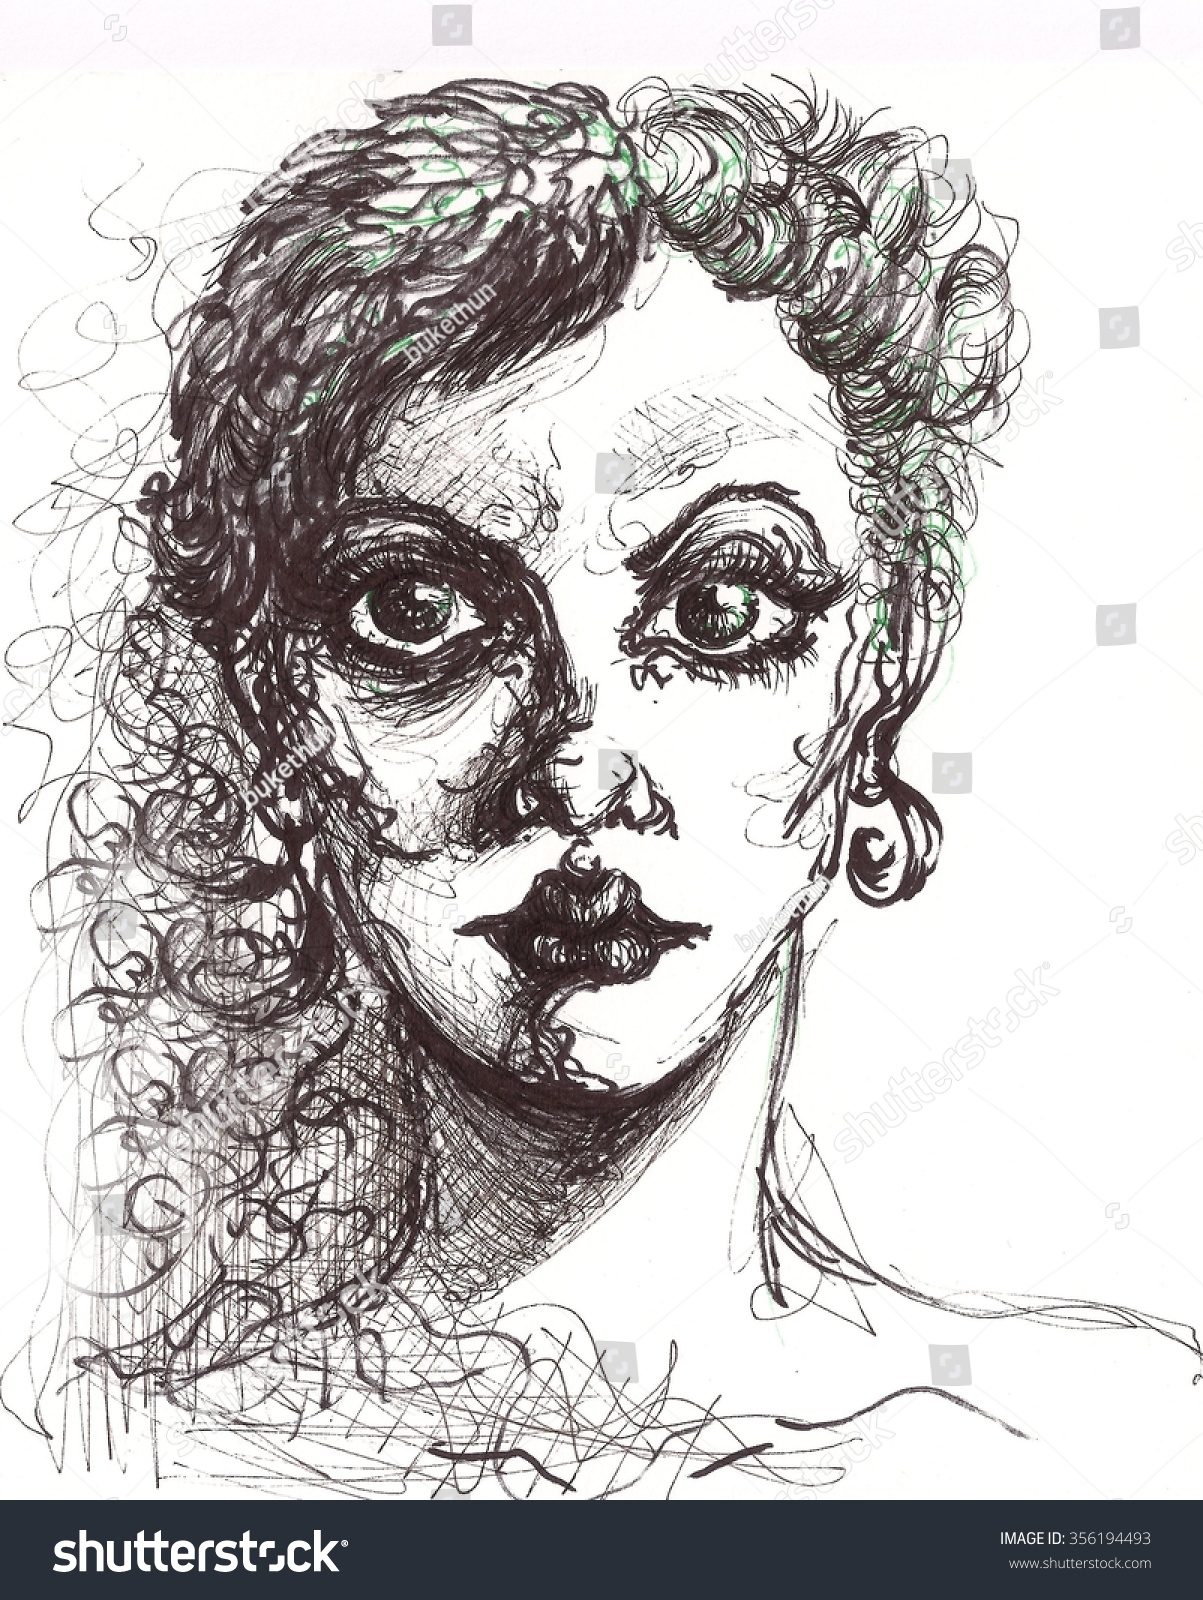 Pencil sketch portrait of an angry girl with drawing effects and thin black lines serious